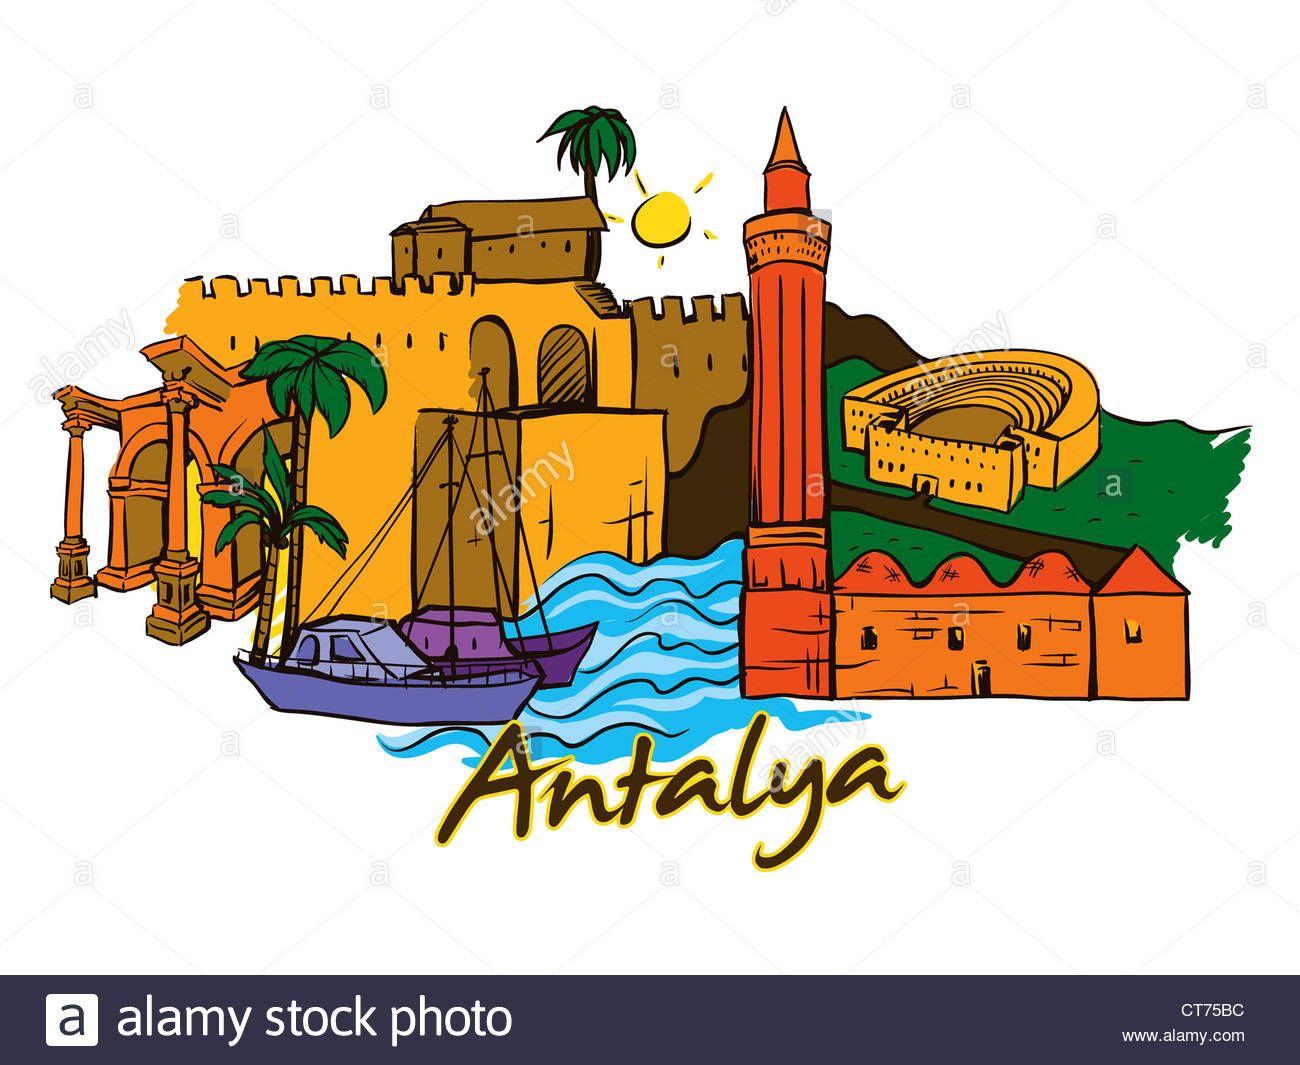 antalya doodles vector illustration Stock Photo, Royalty Free.